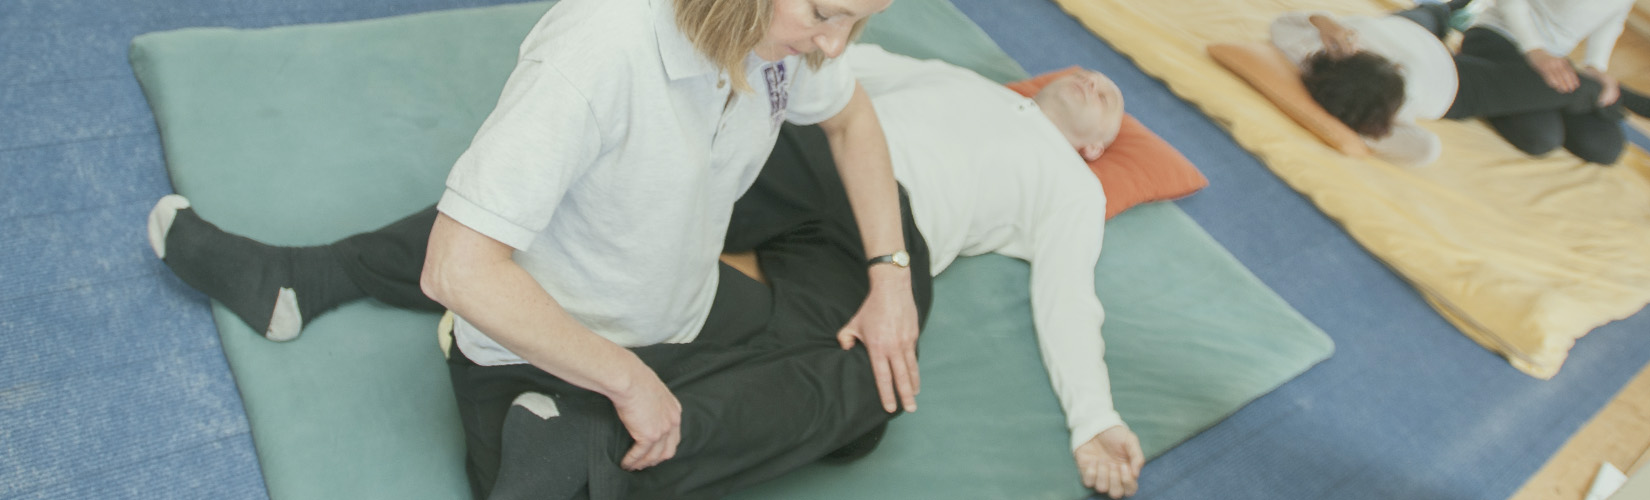 shiatsu treatment floor knees